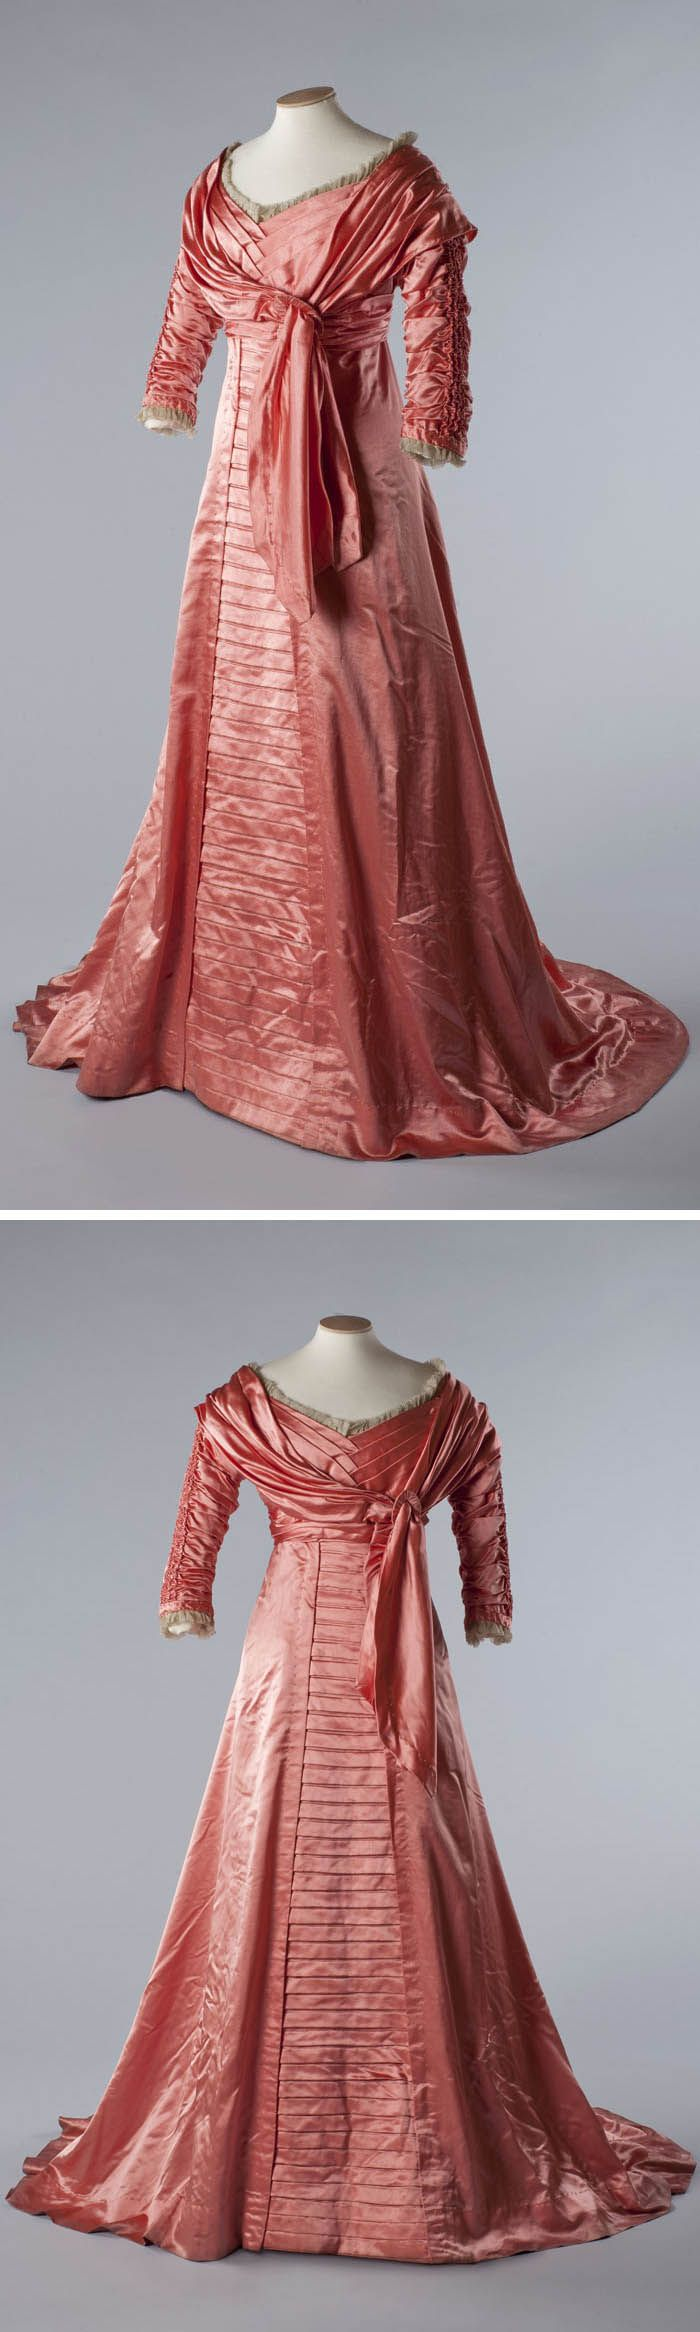 Salmon pink satin evening gown, 1909. Photo by John Chase. Chertsey Museum and Edwardian Culture Network